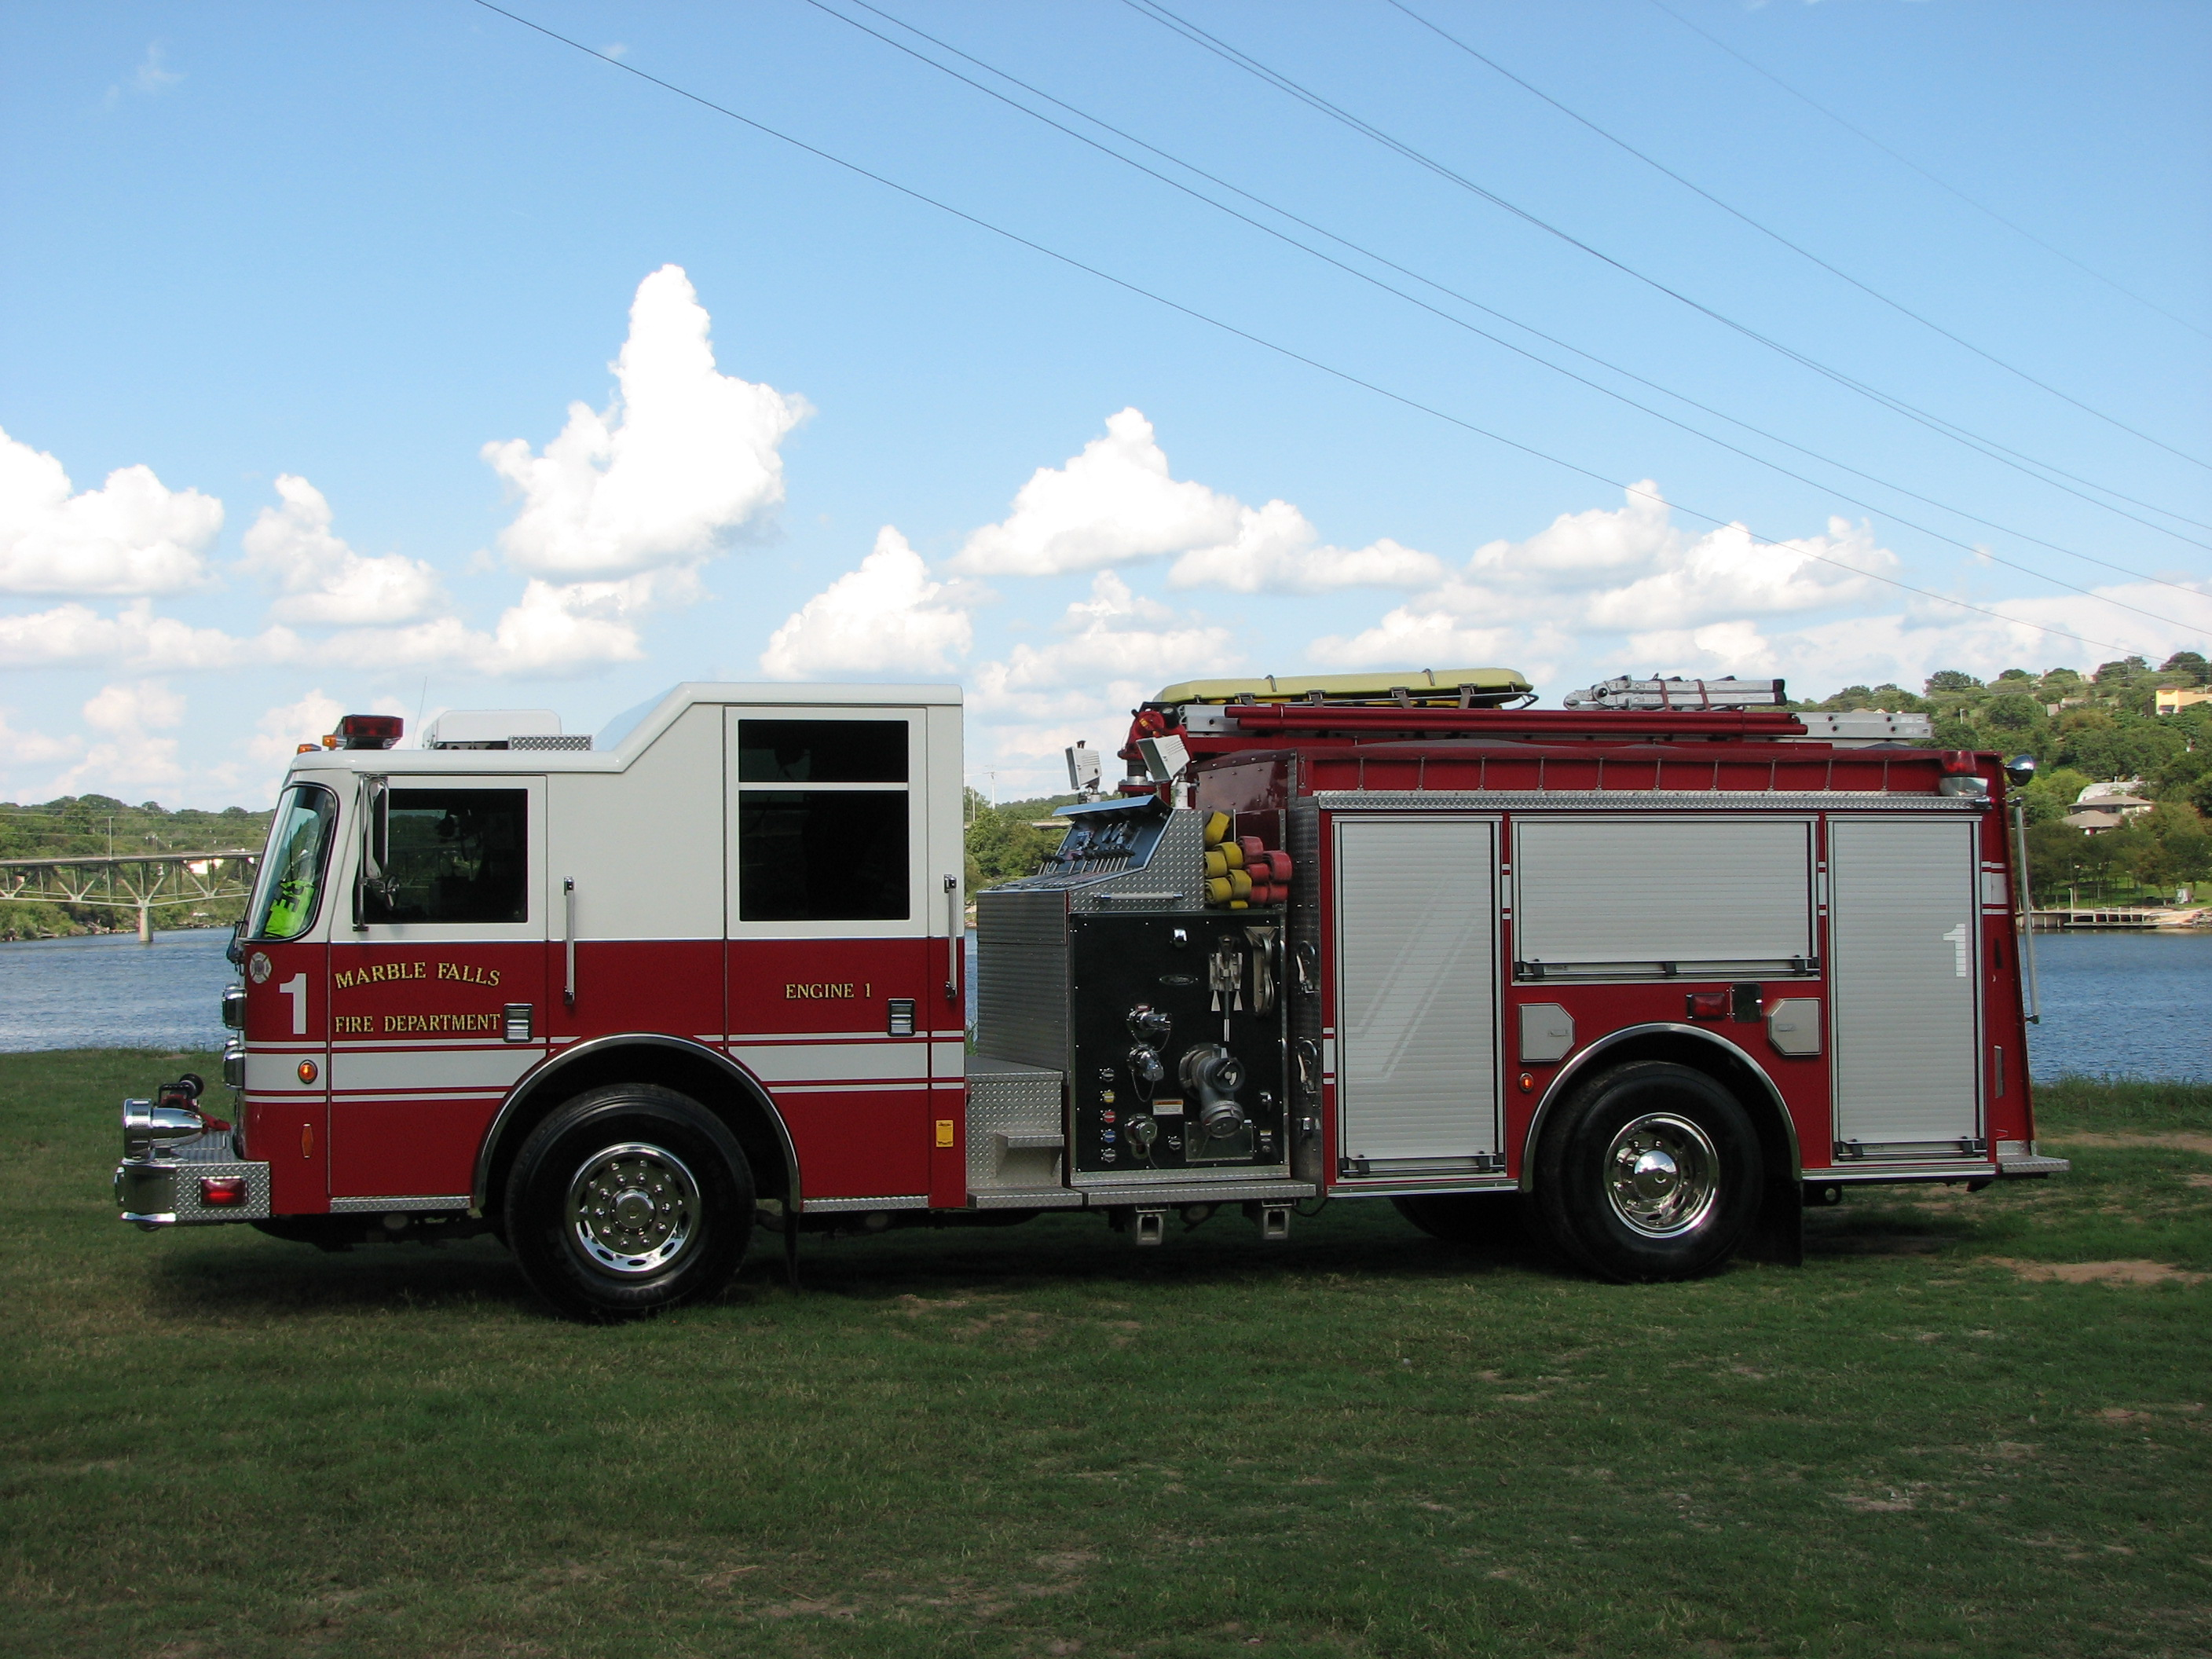 Engine 2, a reserve vehicle with a 1,000 gallon tank